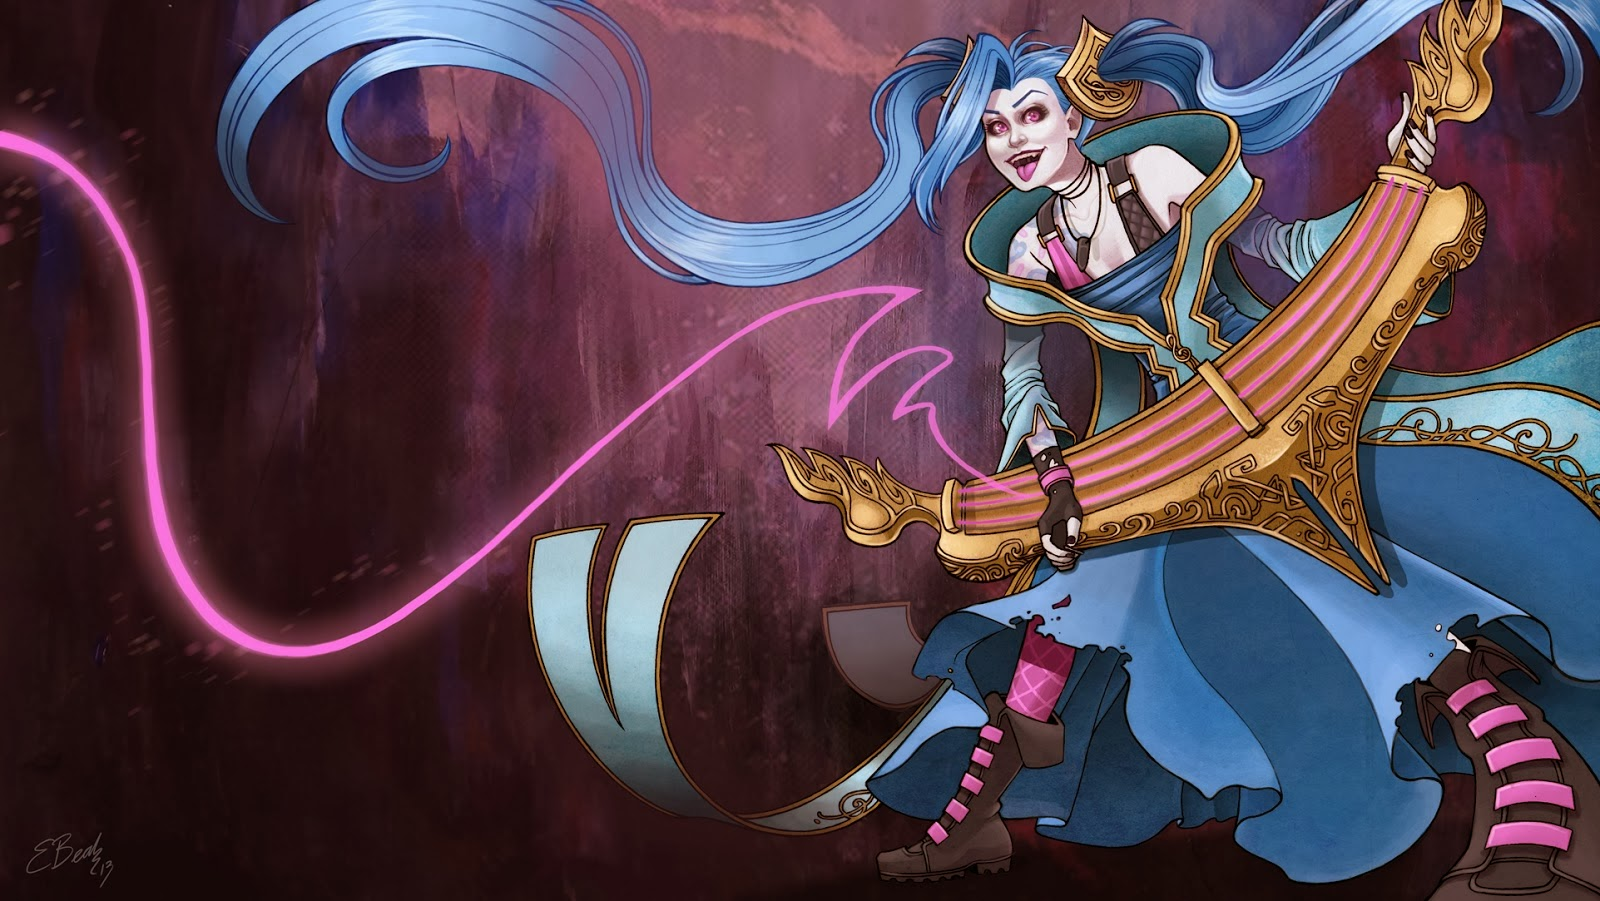 Jinx Lol Wallpaper Jinx League of Legends Wallpaper Jinx Desktop Wallpaper